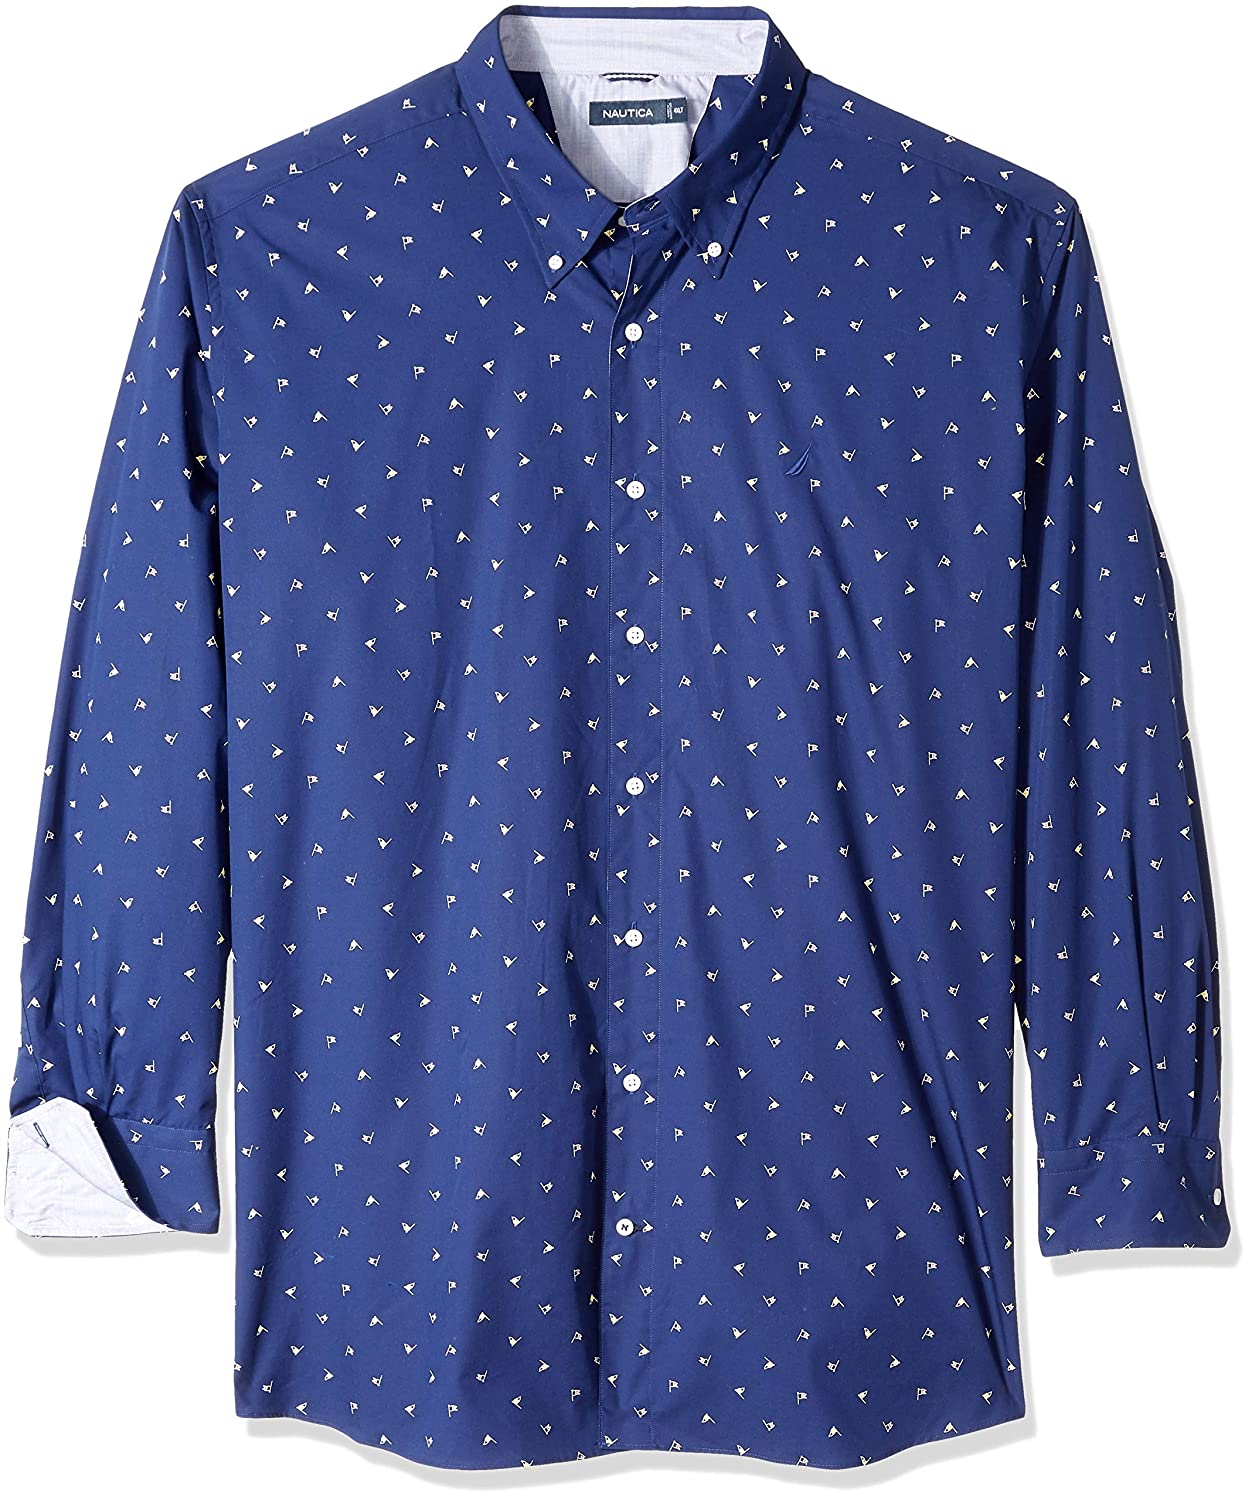 Nautica Mens Big and Tall Long Sleeve Wrinkle Resistant 100/% Cotton Button Down Shirt